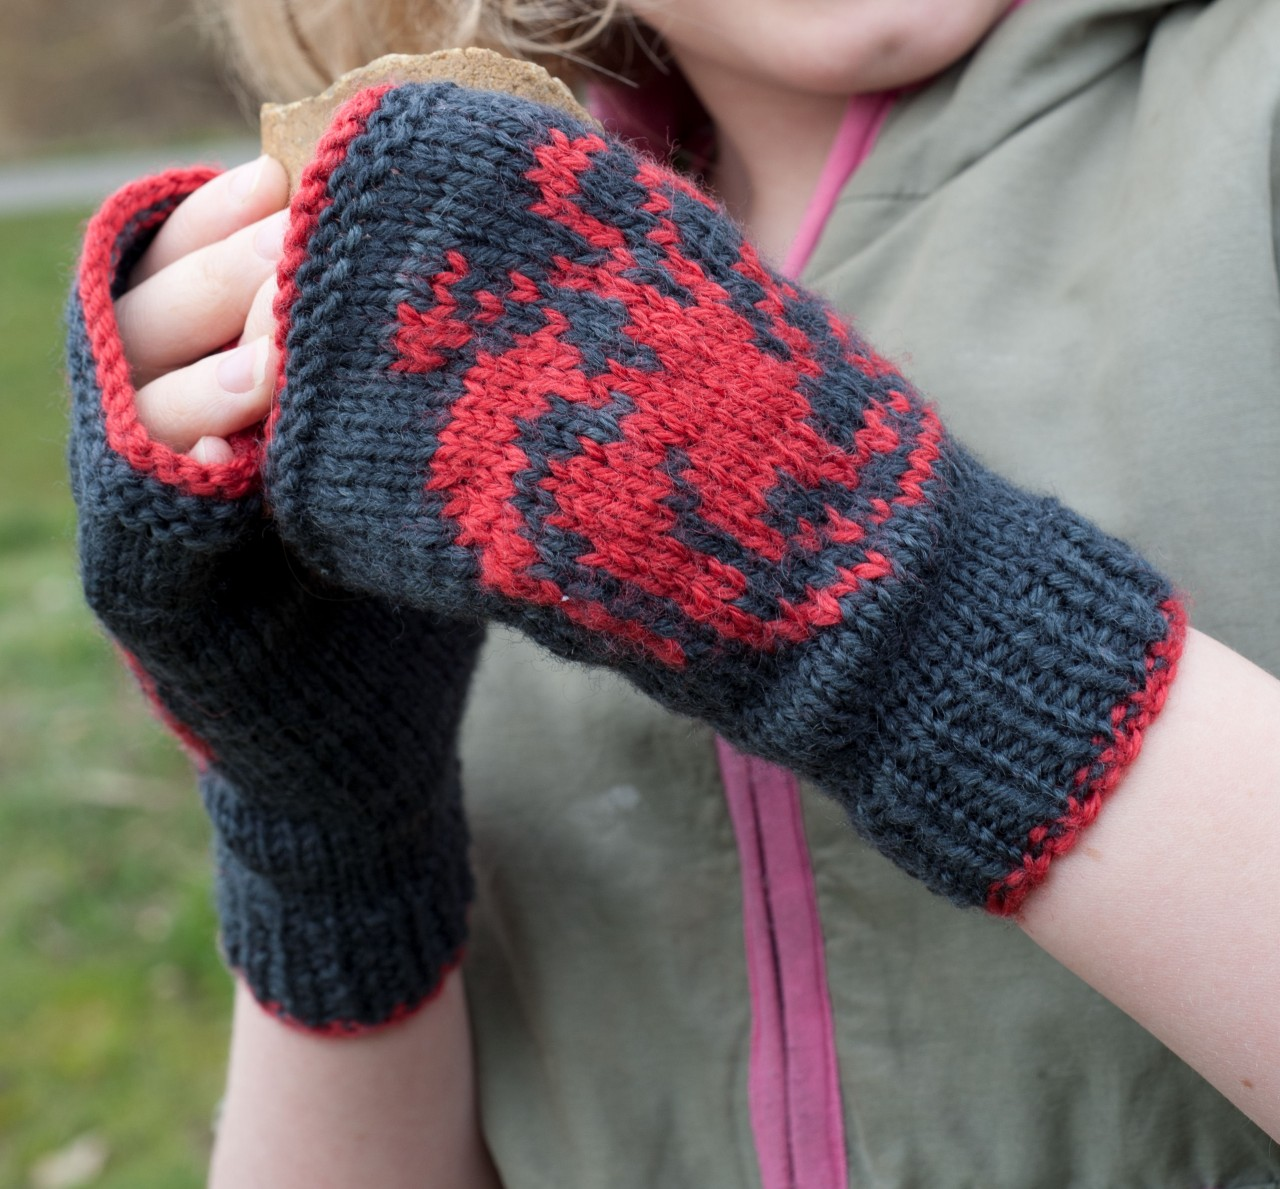 Game of Thrones: Targaryen mitts kit